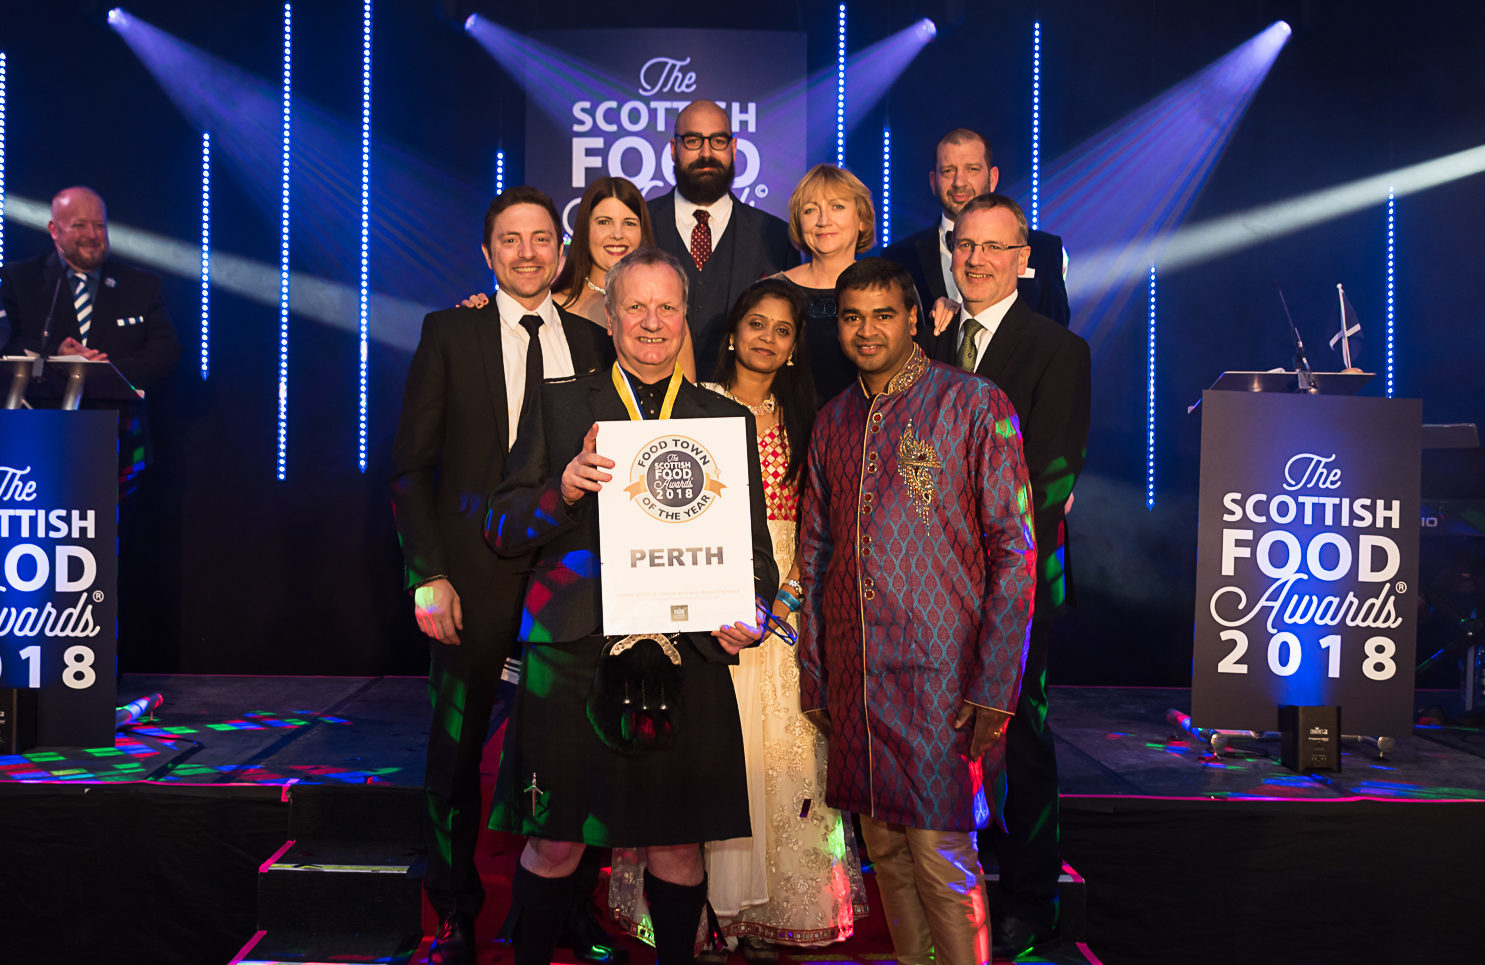 All the Perthshire winners at the awards.